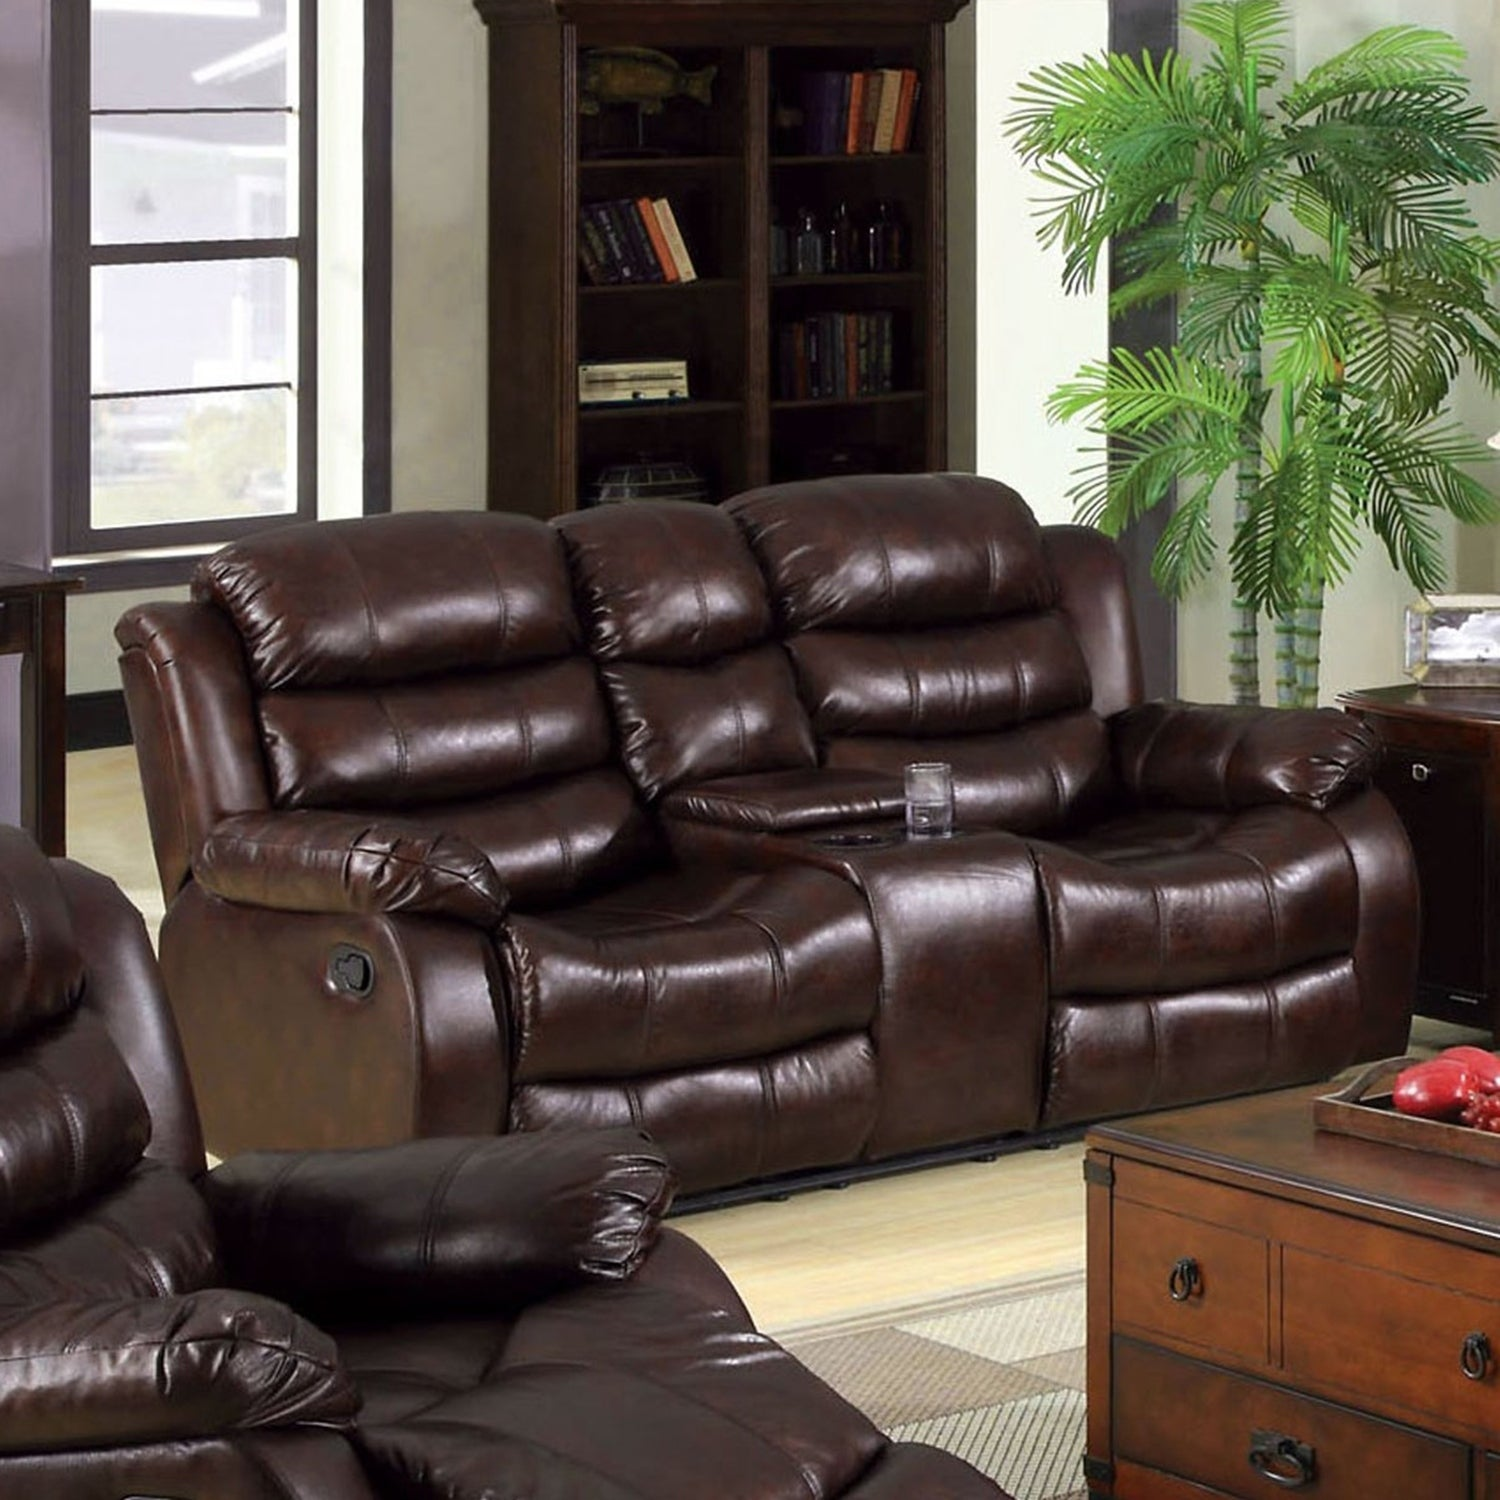 Phenomenal Berkshield Transitional Rustic Brown Reclining Loveseat By Foa Andrewgaddart Wooden Chair Designs For Living Room Andrewgaddartcom